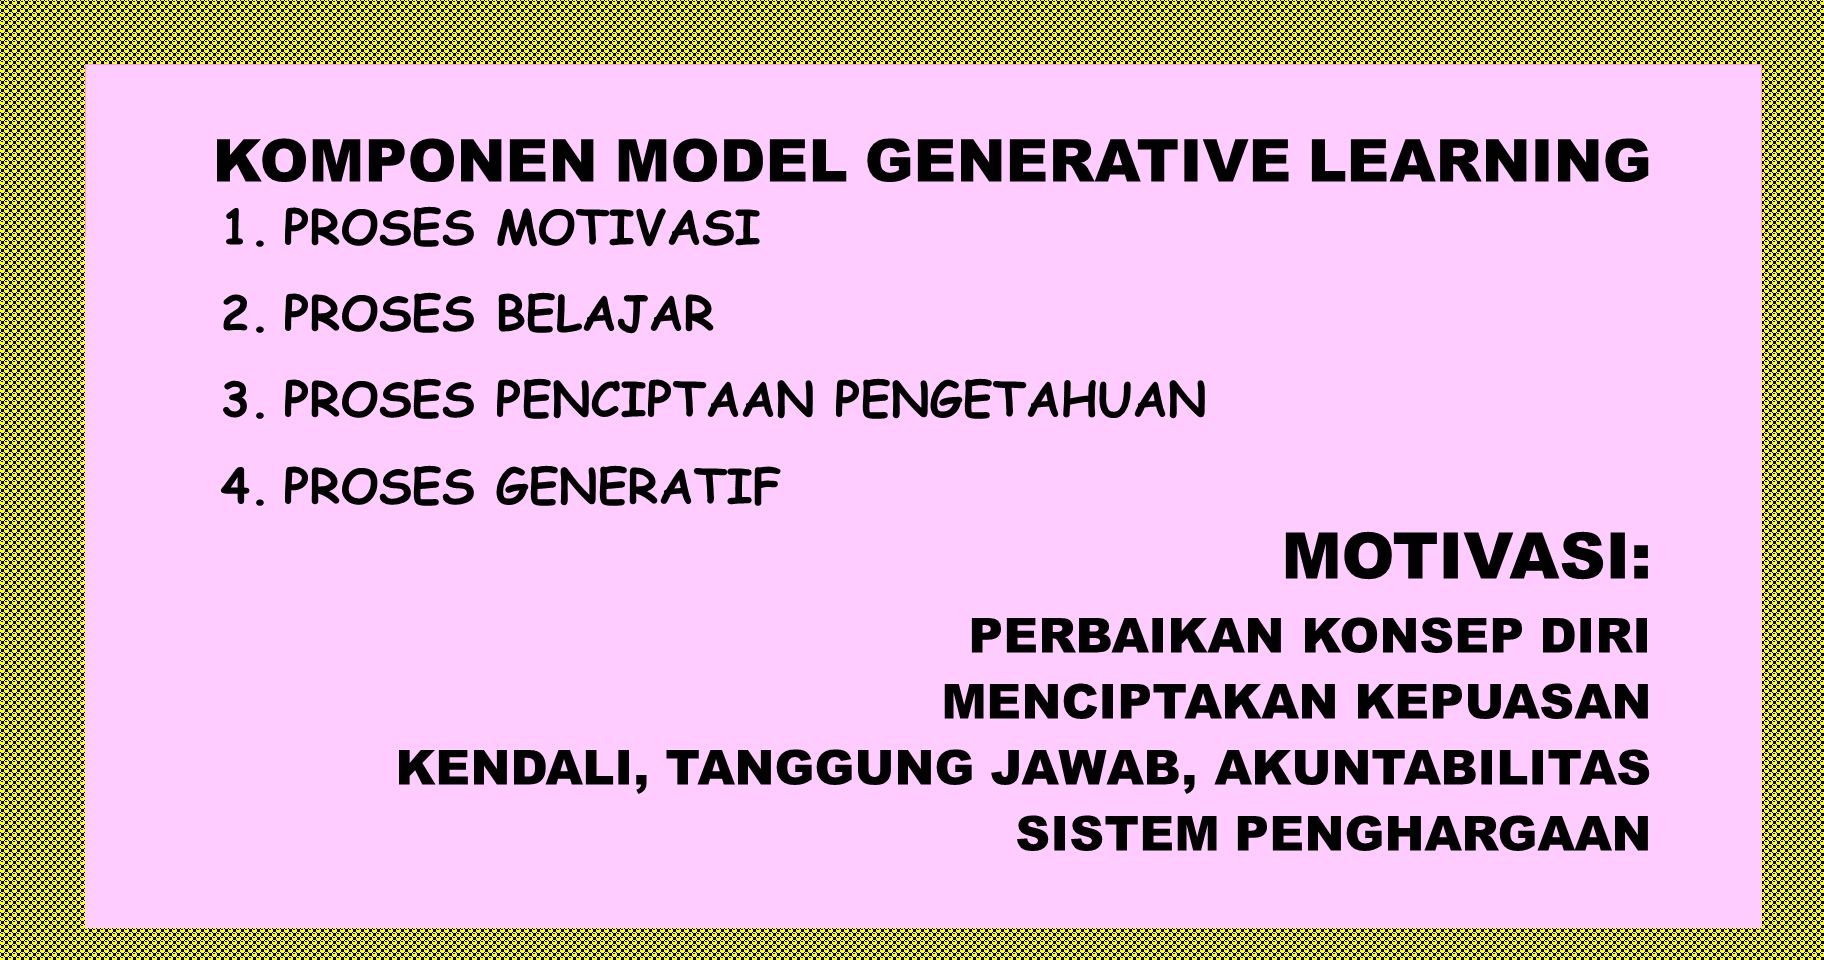 MOTIVASI: KOMPONEN MODEL GENERATIVE LEARNING PROSES MOTIVASI